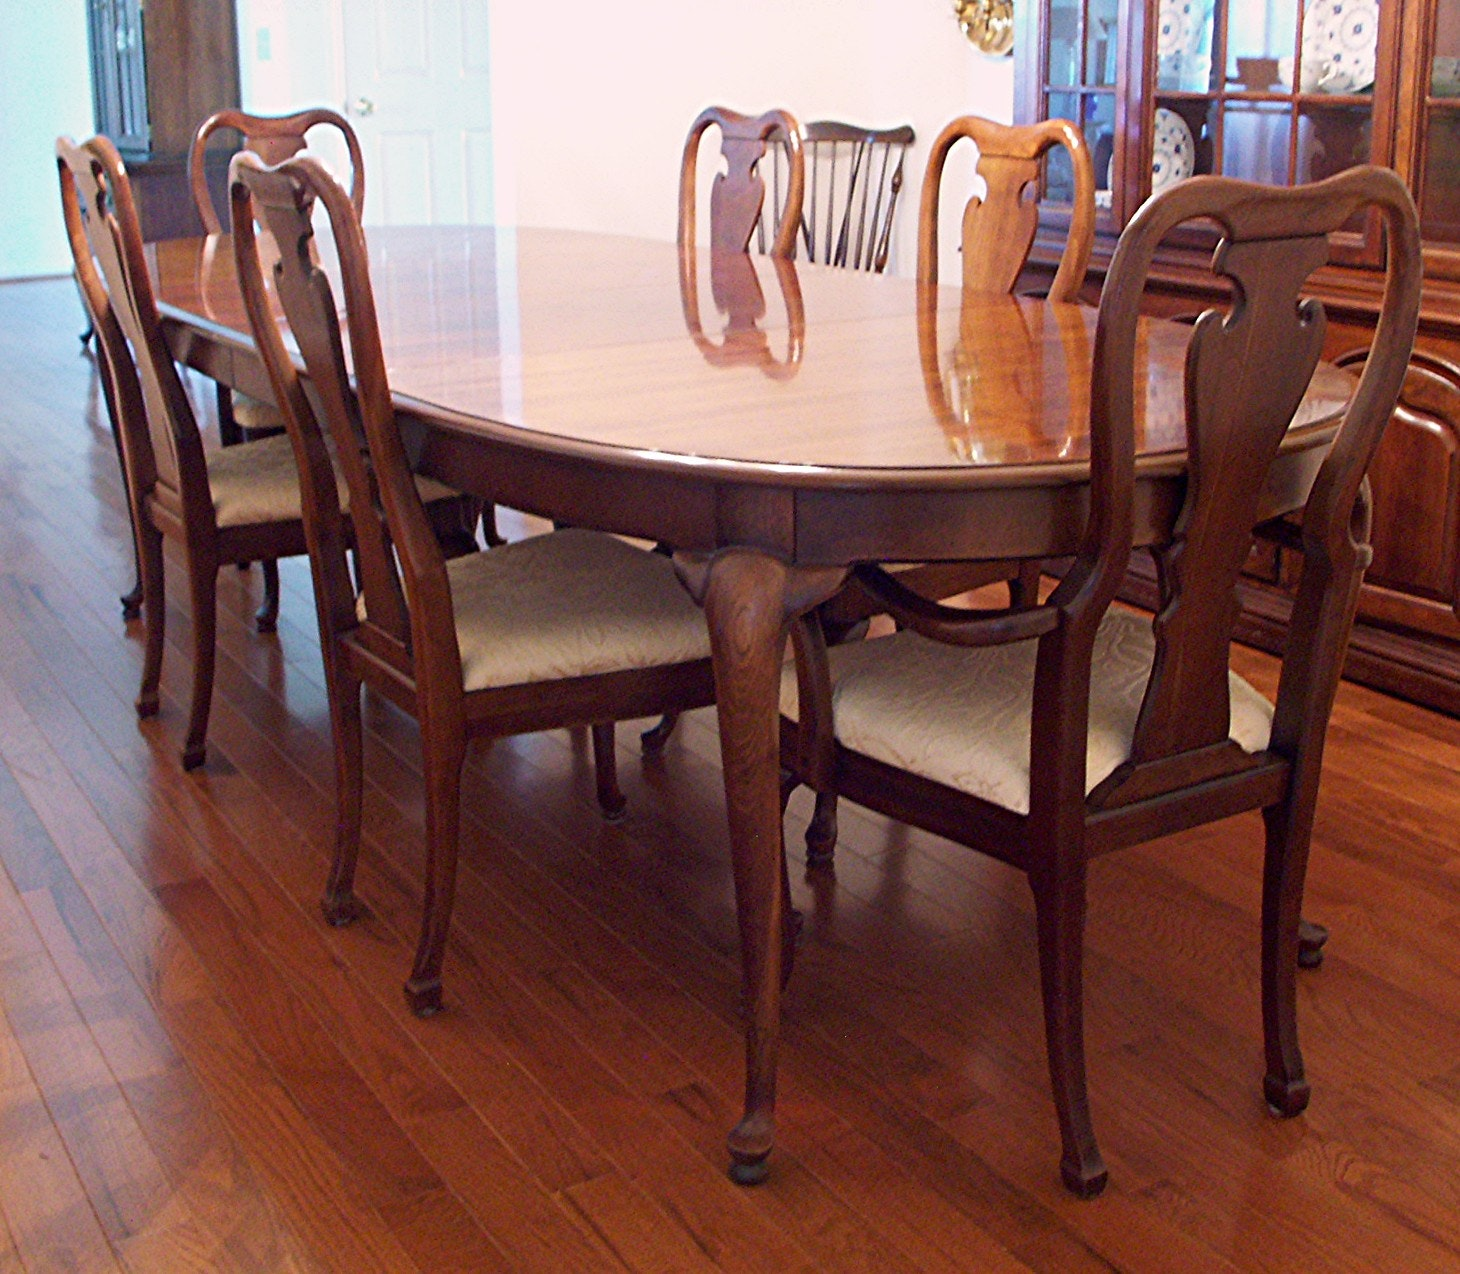 Thomasville Queen Anne Dining Table and Six Chairs EBTH : PICT0090JPGixlibrb 11 from www.ebth.com size 880 x 906 jpeg 187kB